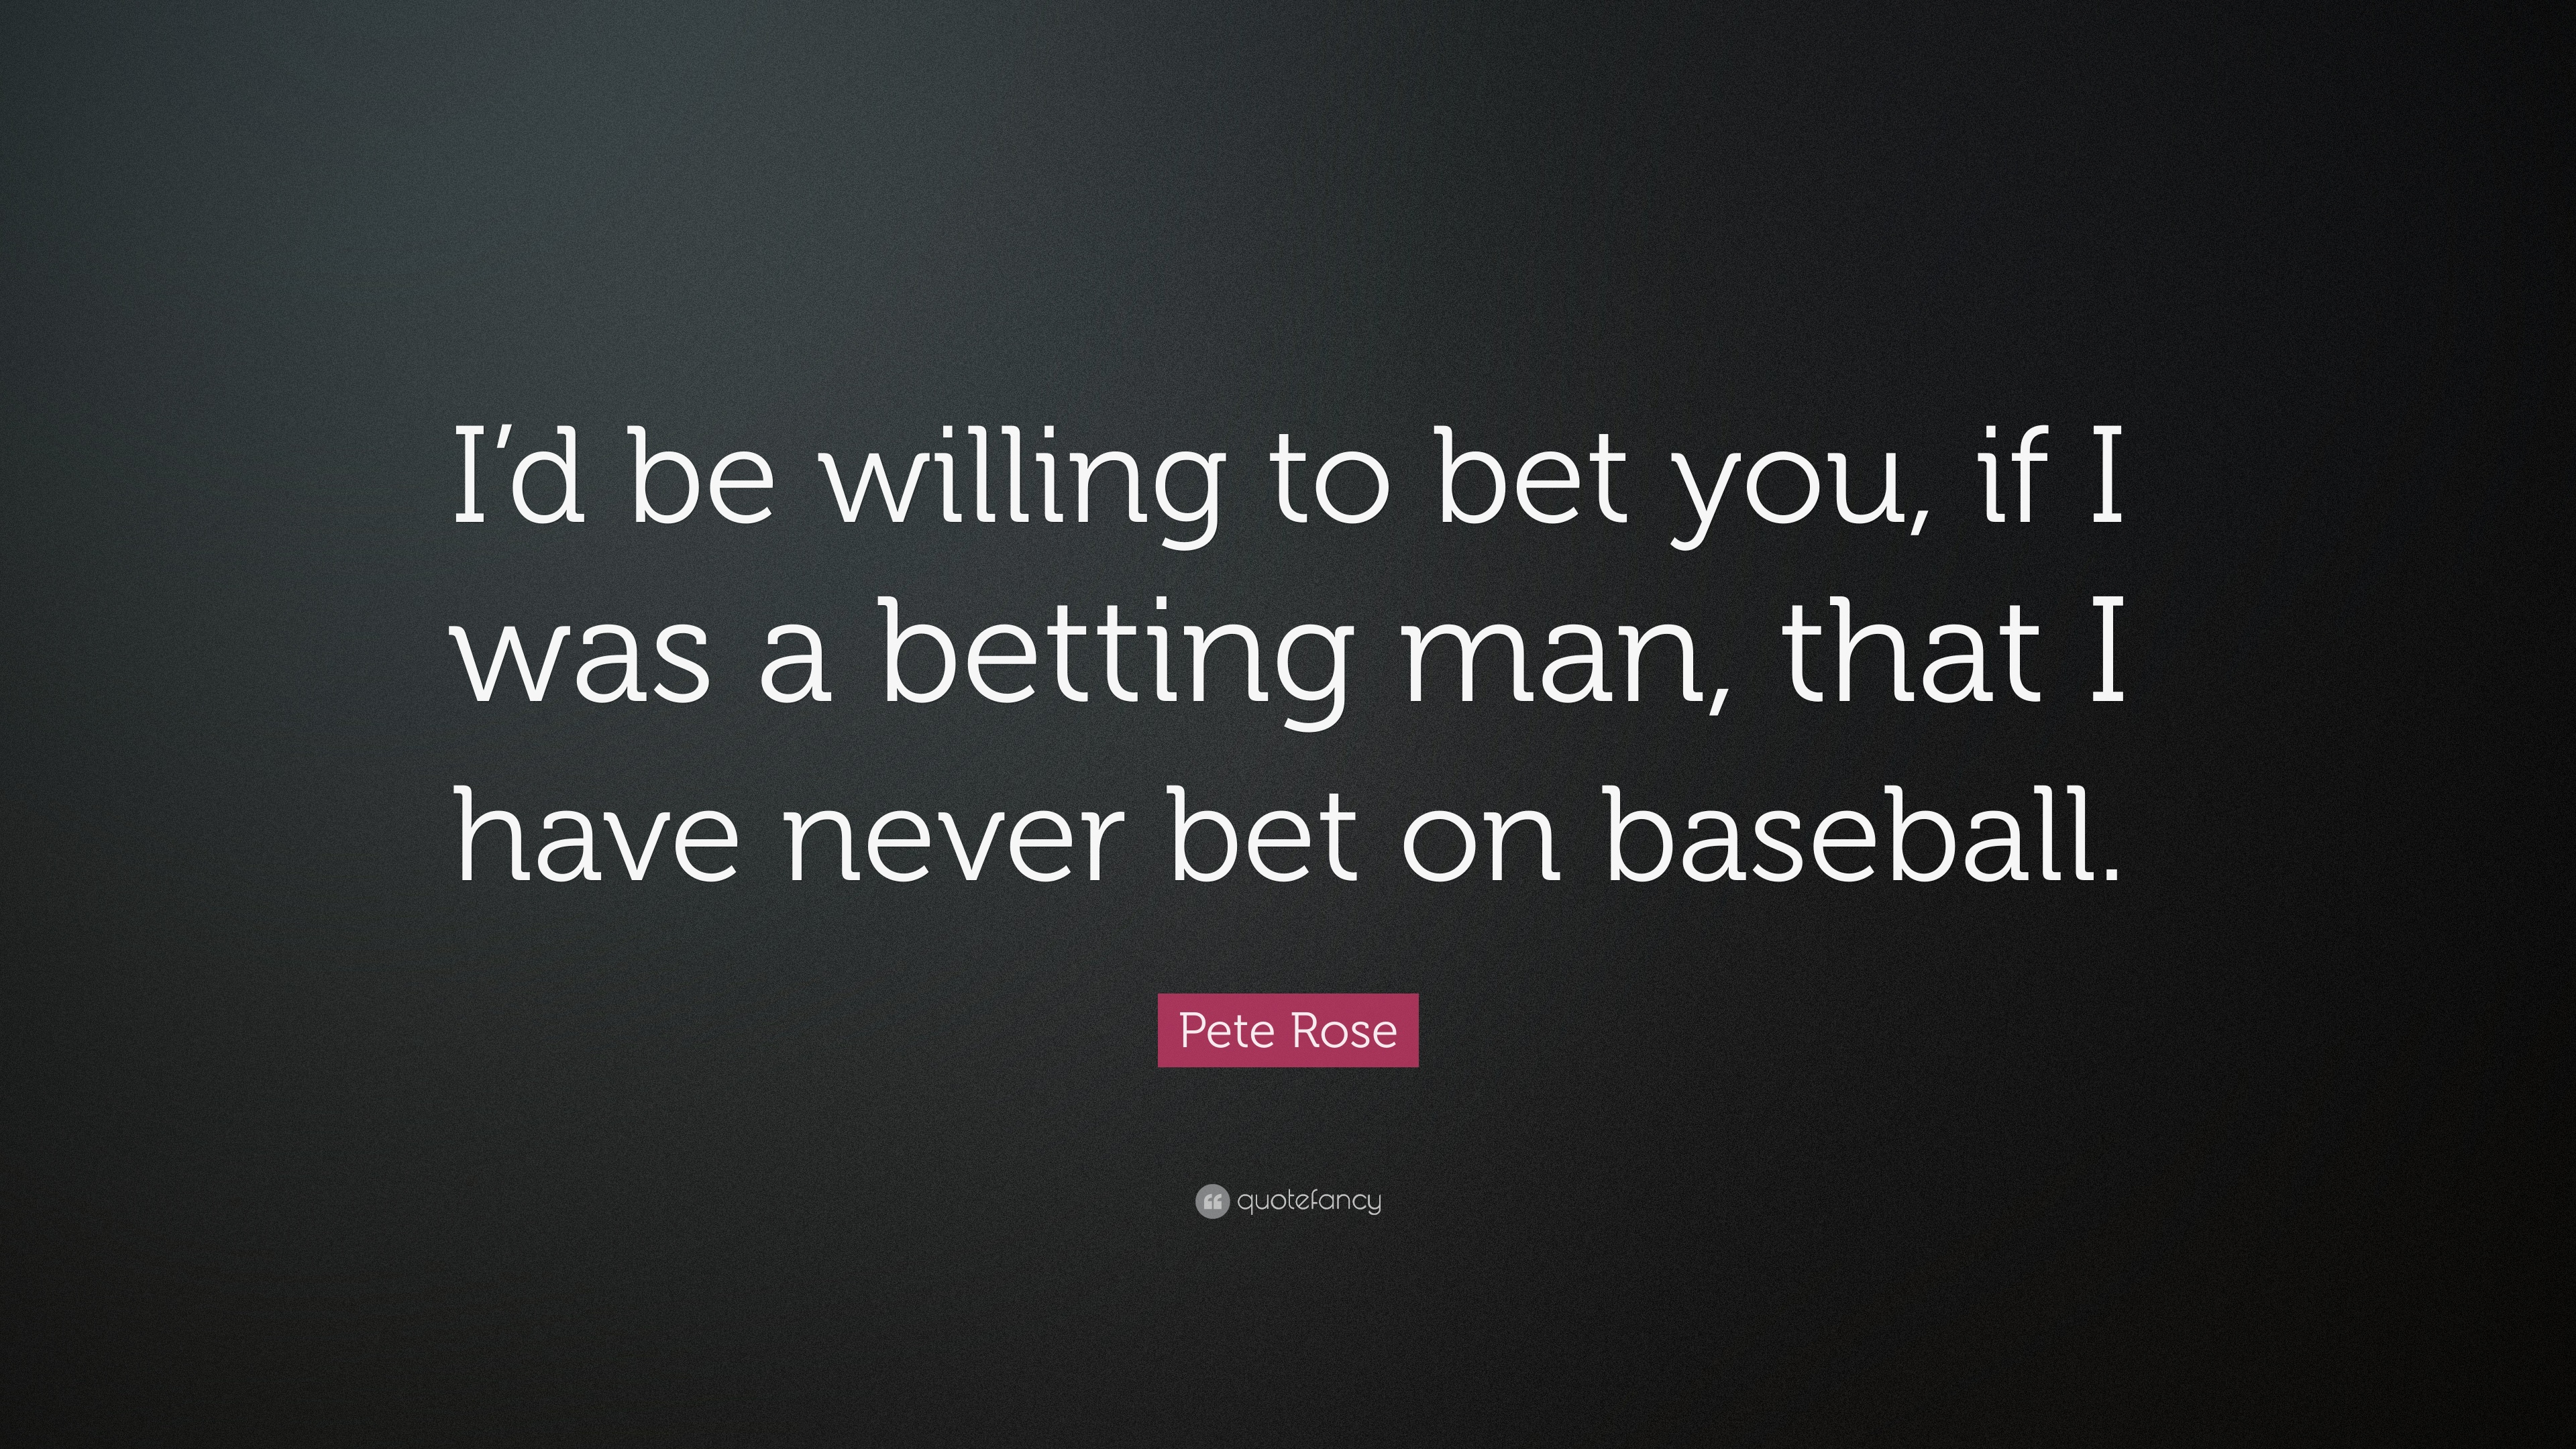 pete rose quotes on betting